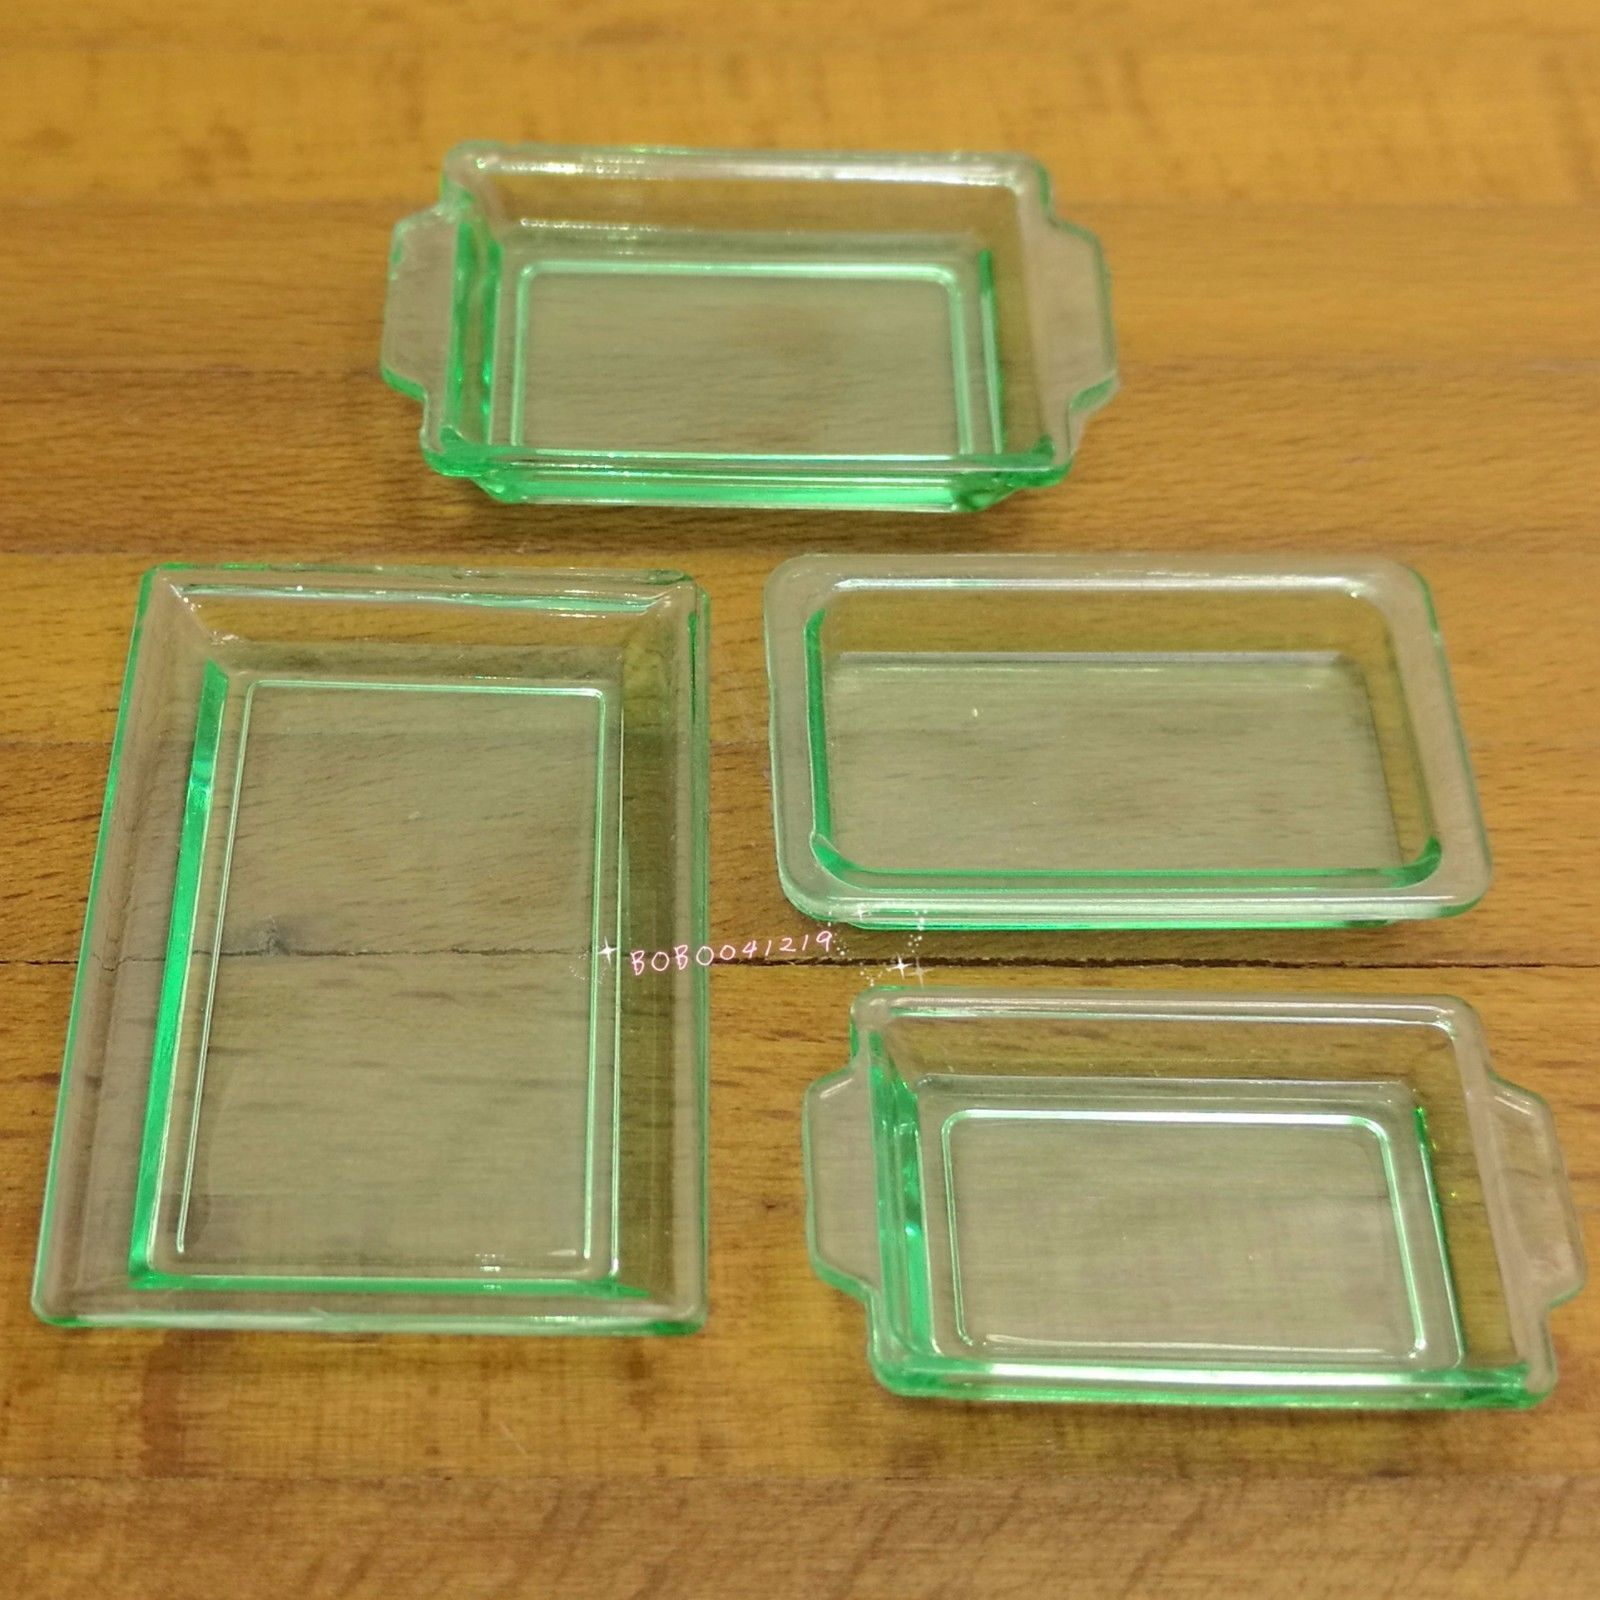 Miniature Green Metal Food Drink Serving Trays Model Toy for 1:12 Dollhouse